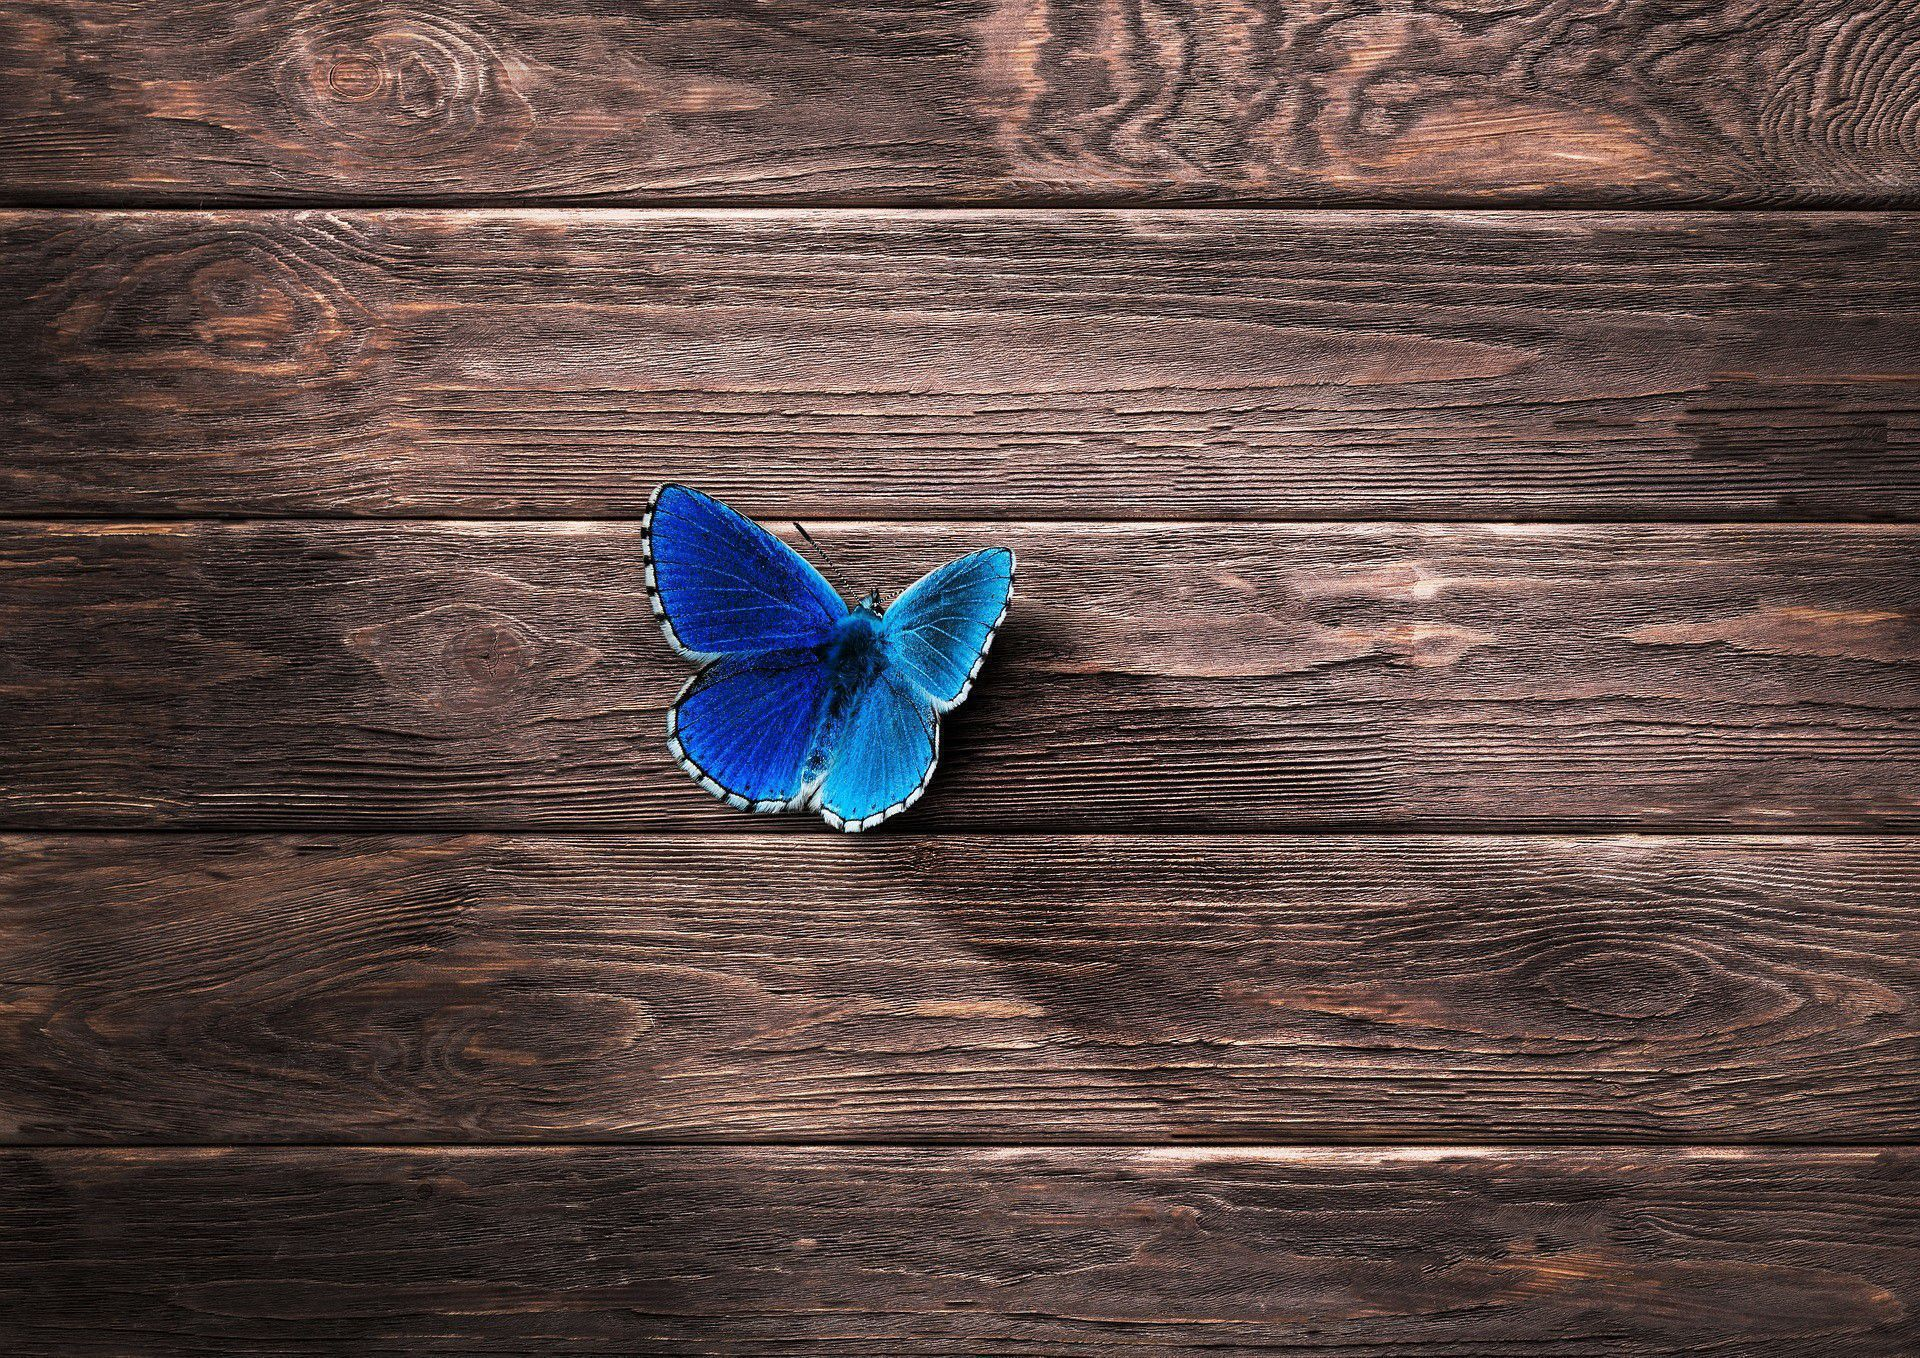 Blue Butterfly Images